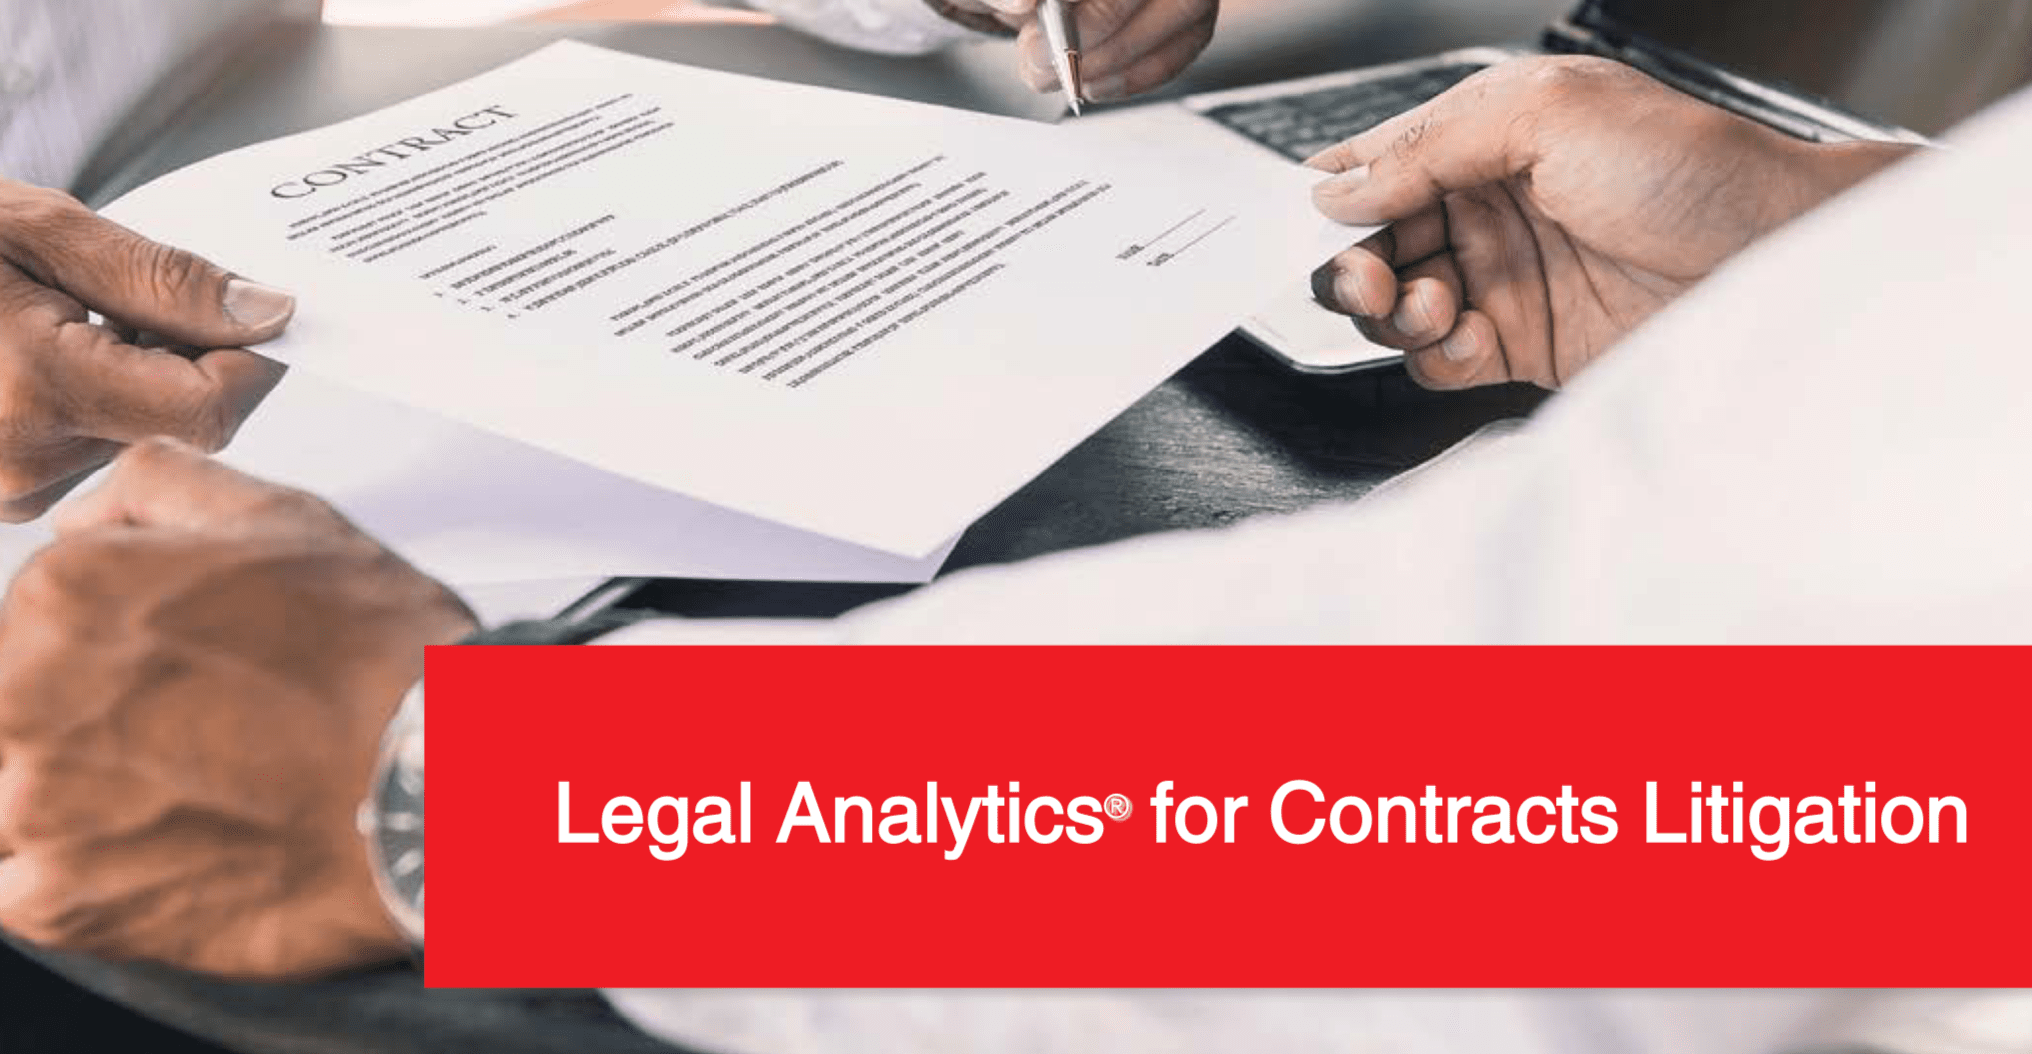 Legal analytics for Contract Litigation. People exchanging contract; image courtesy of Lex Machina.